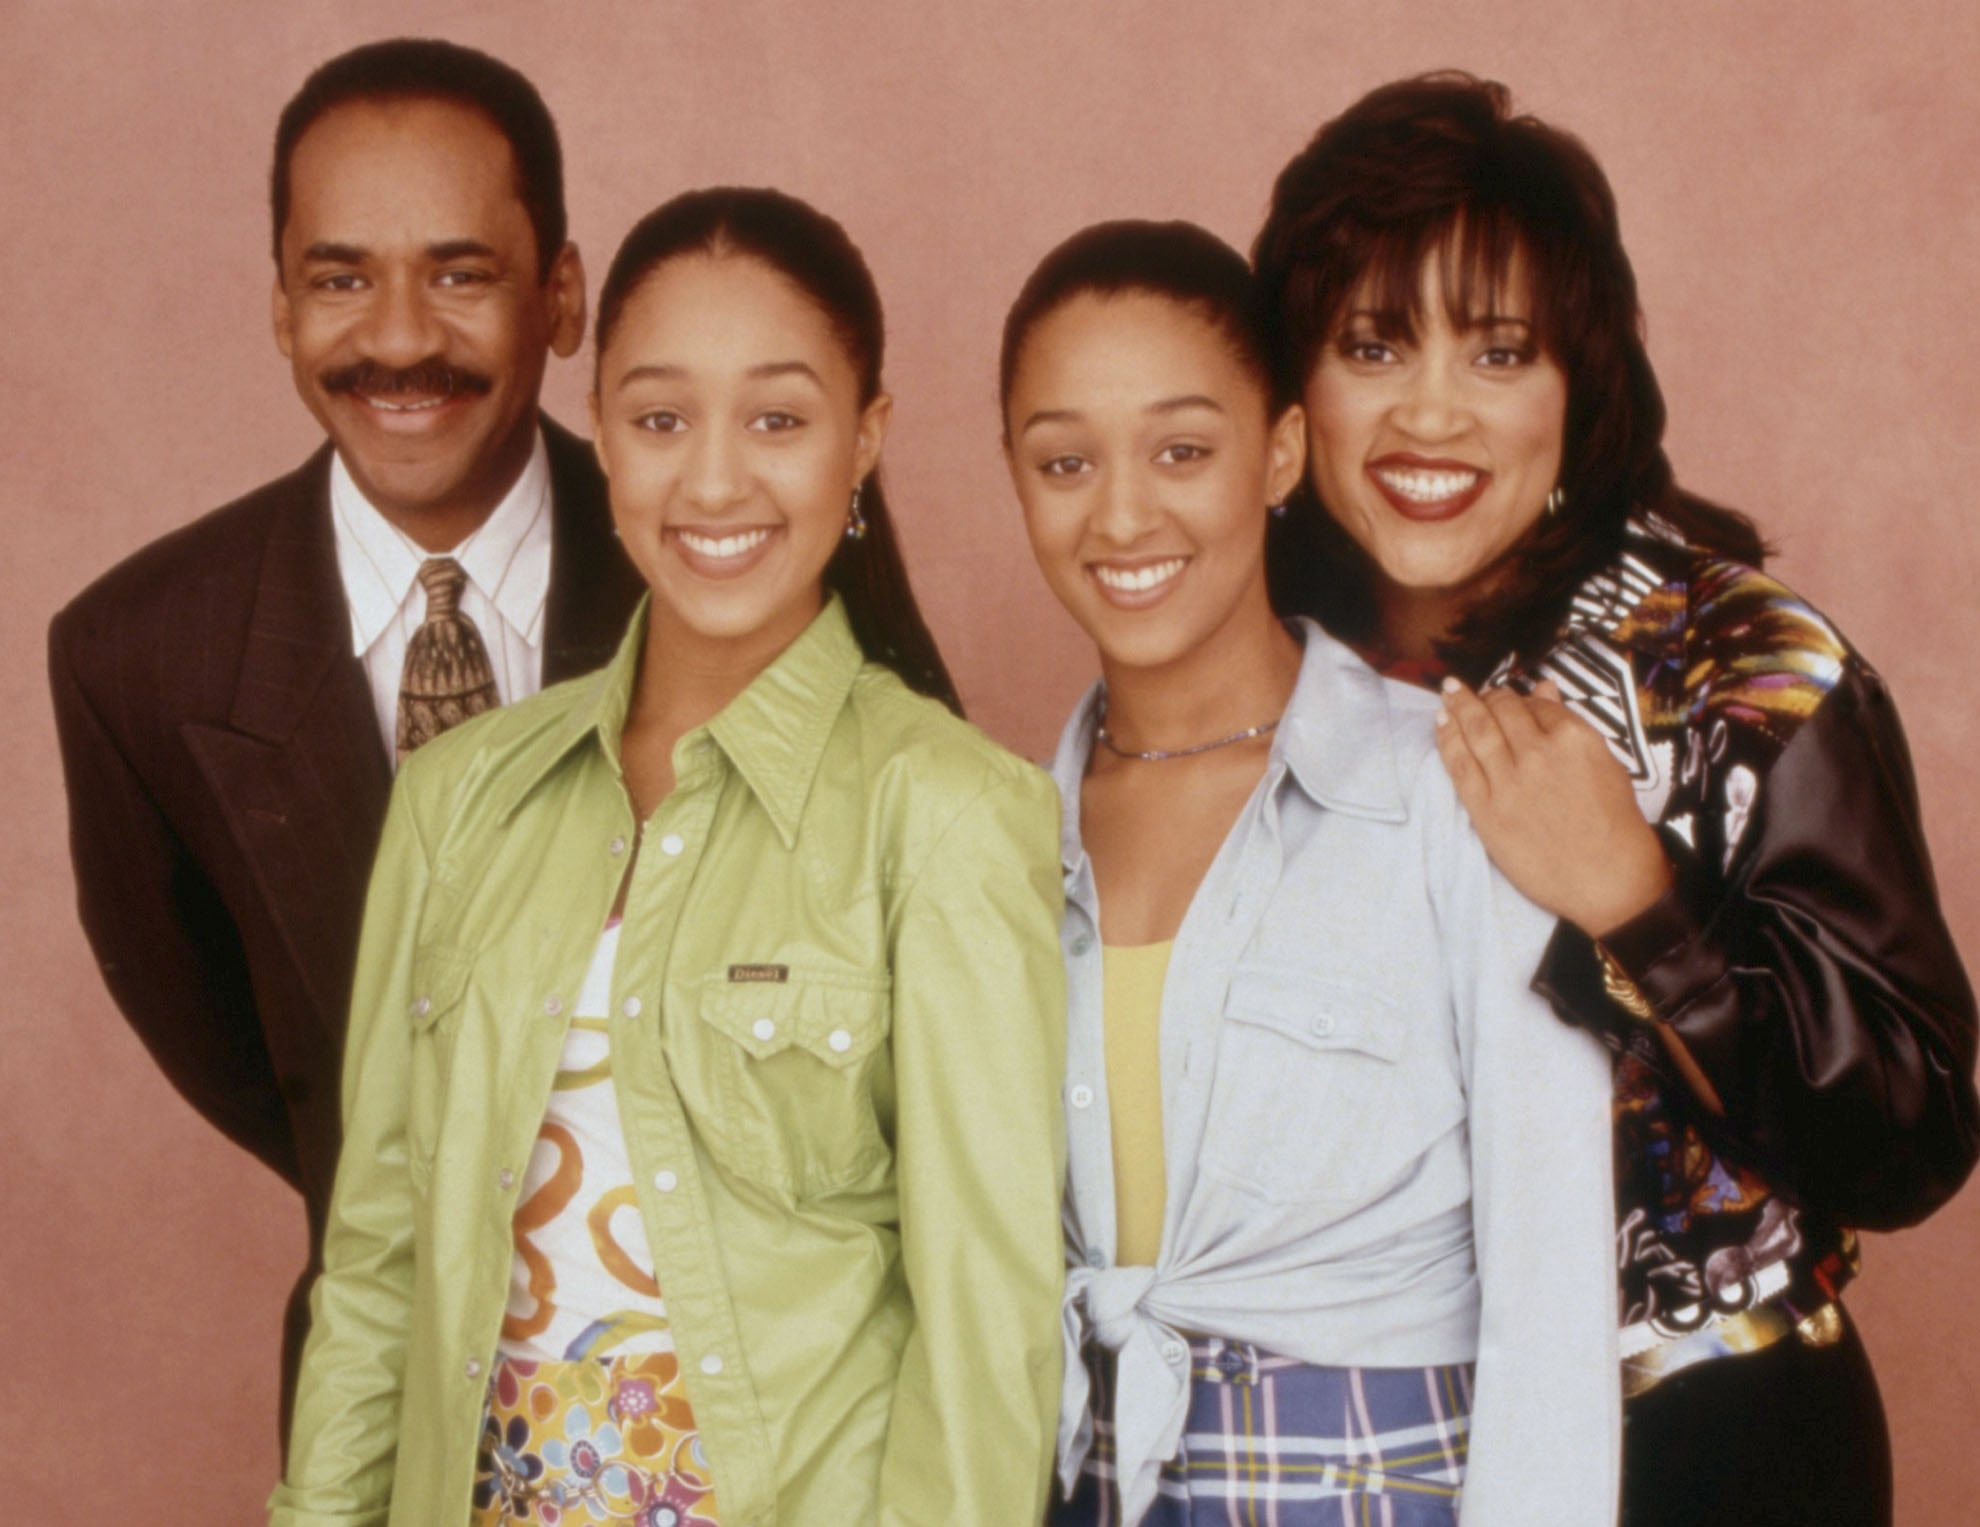 A 'Sister, Sister' Reboot Is in the Works, Jackée Harry Confirms